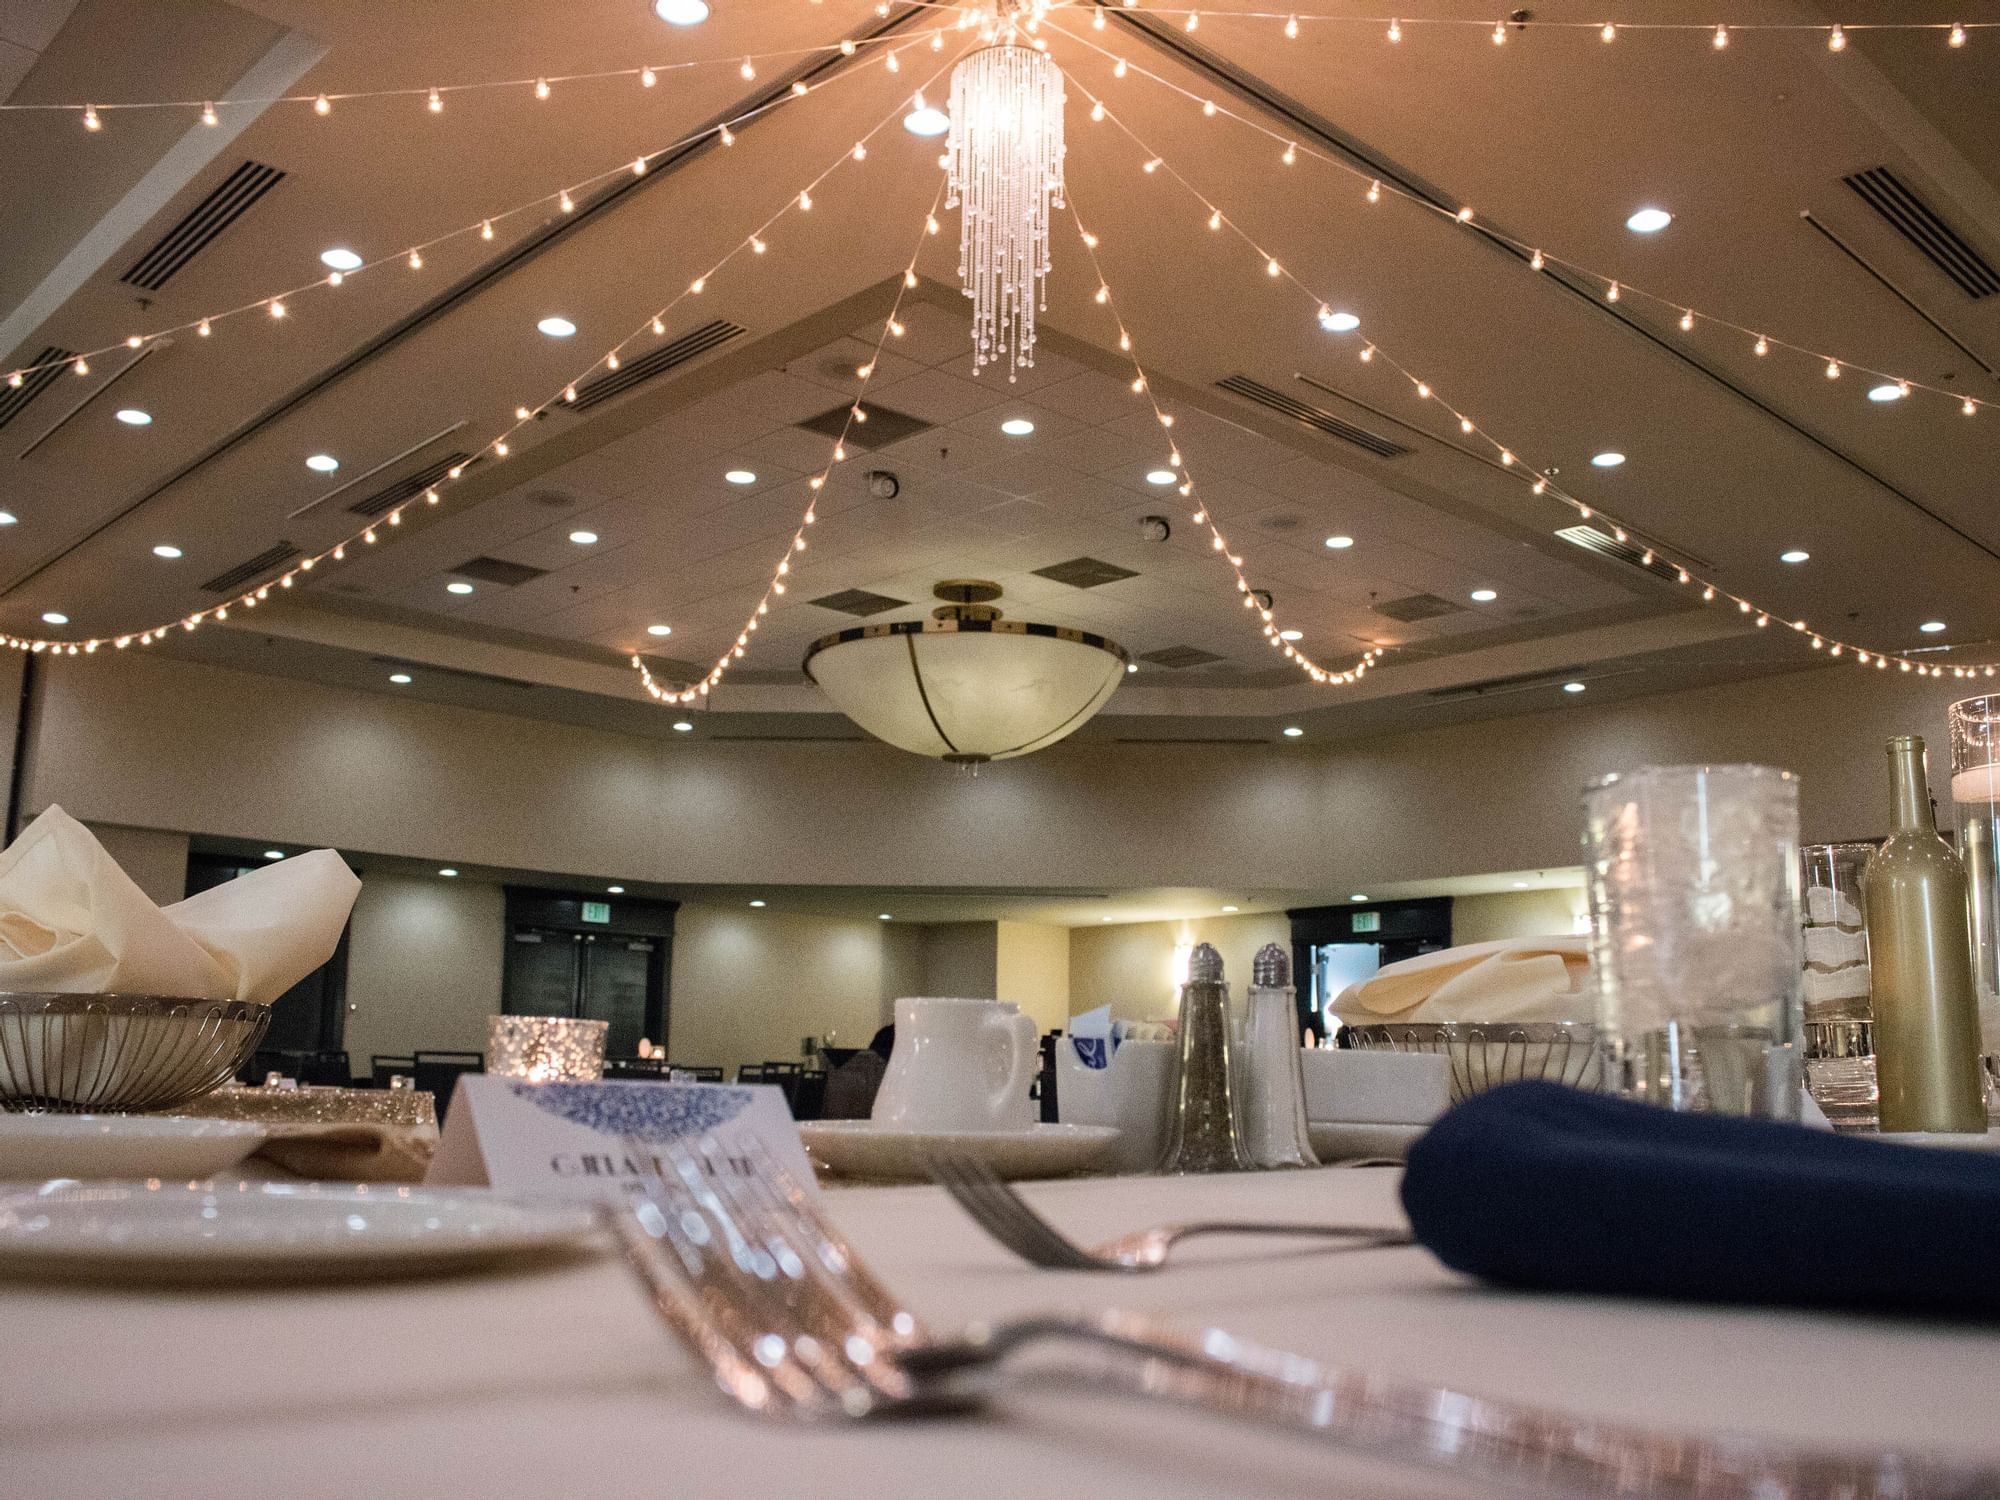 silverware on tables in a large room